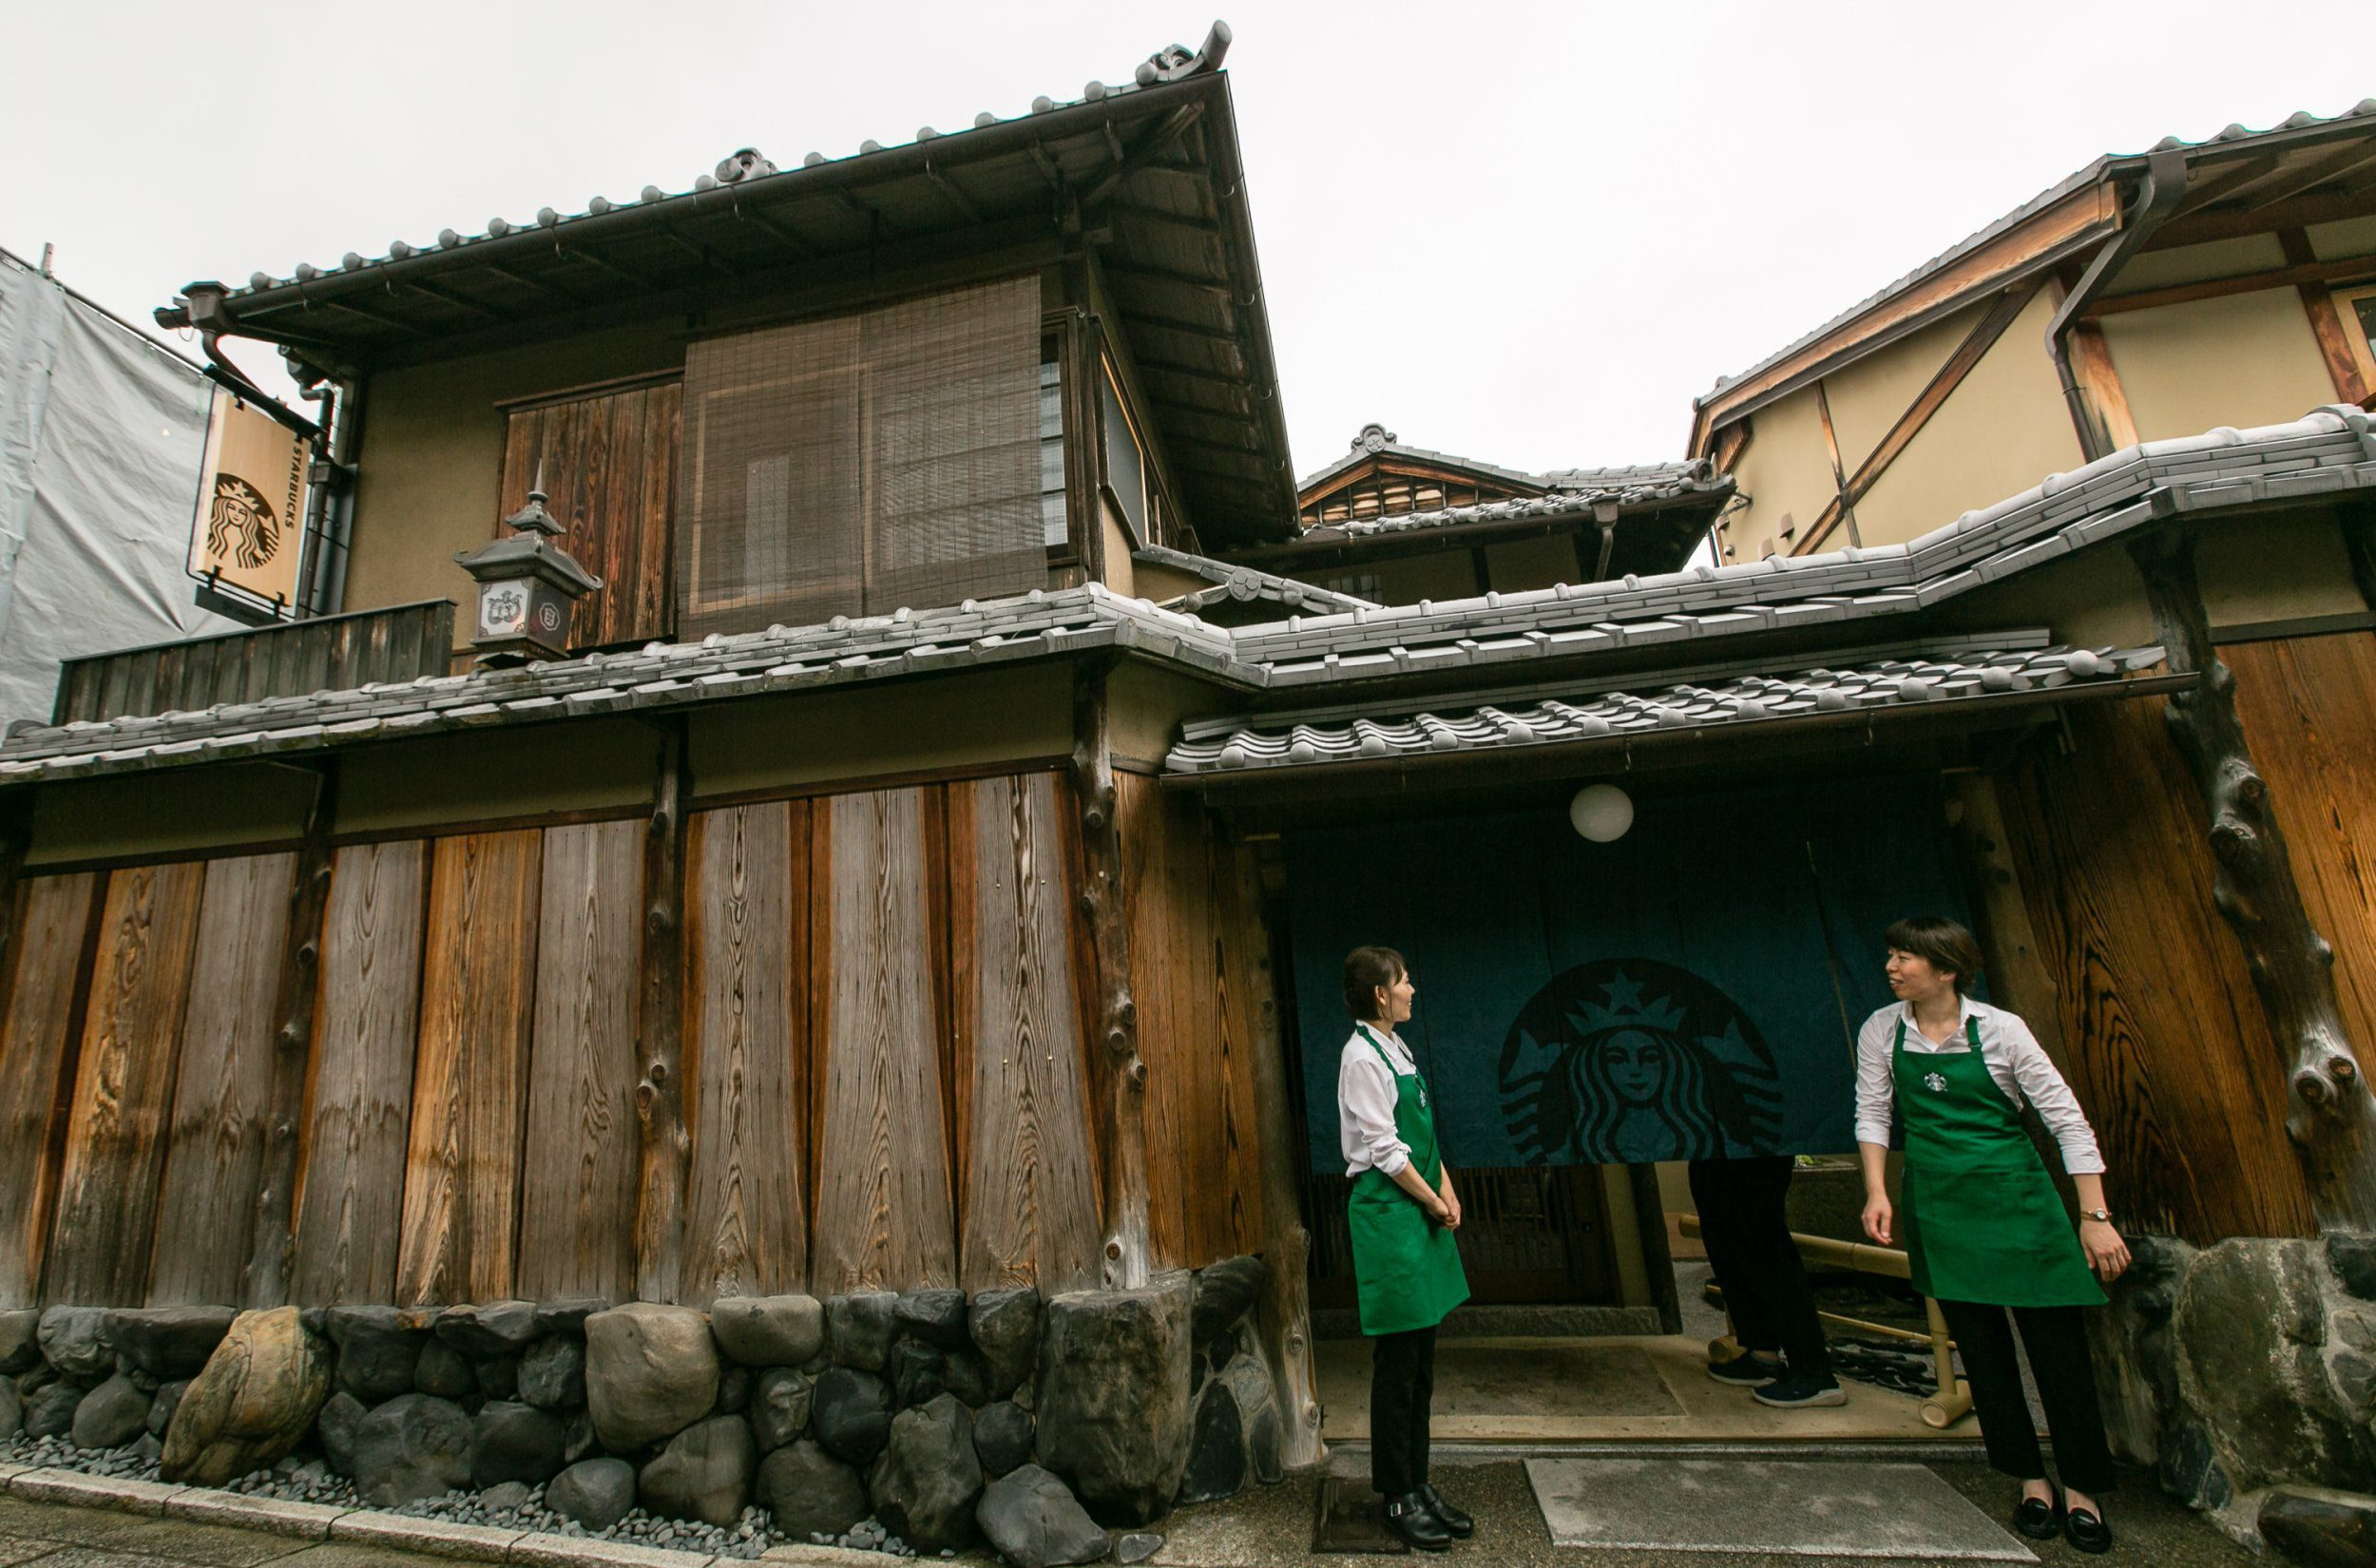 Starbucks is opening a new cafe in a historic, 200-year-old building in Kyoto, Japan and its STUNNING